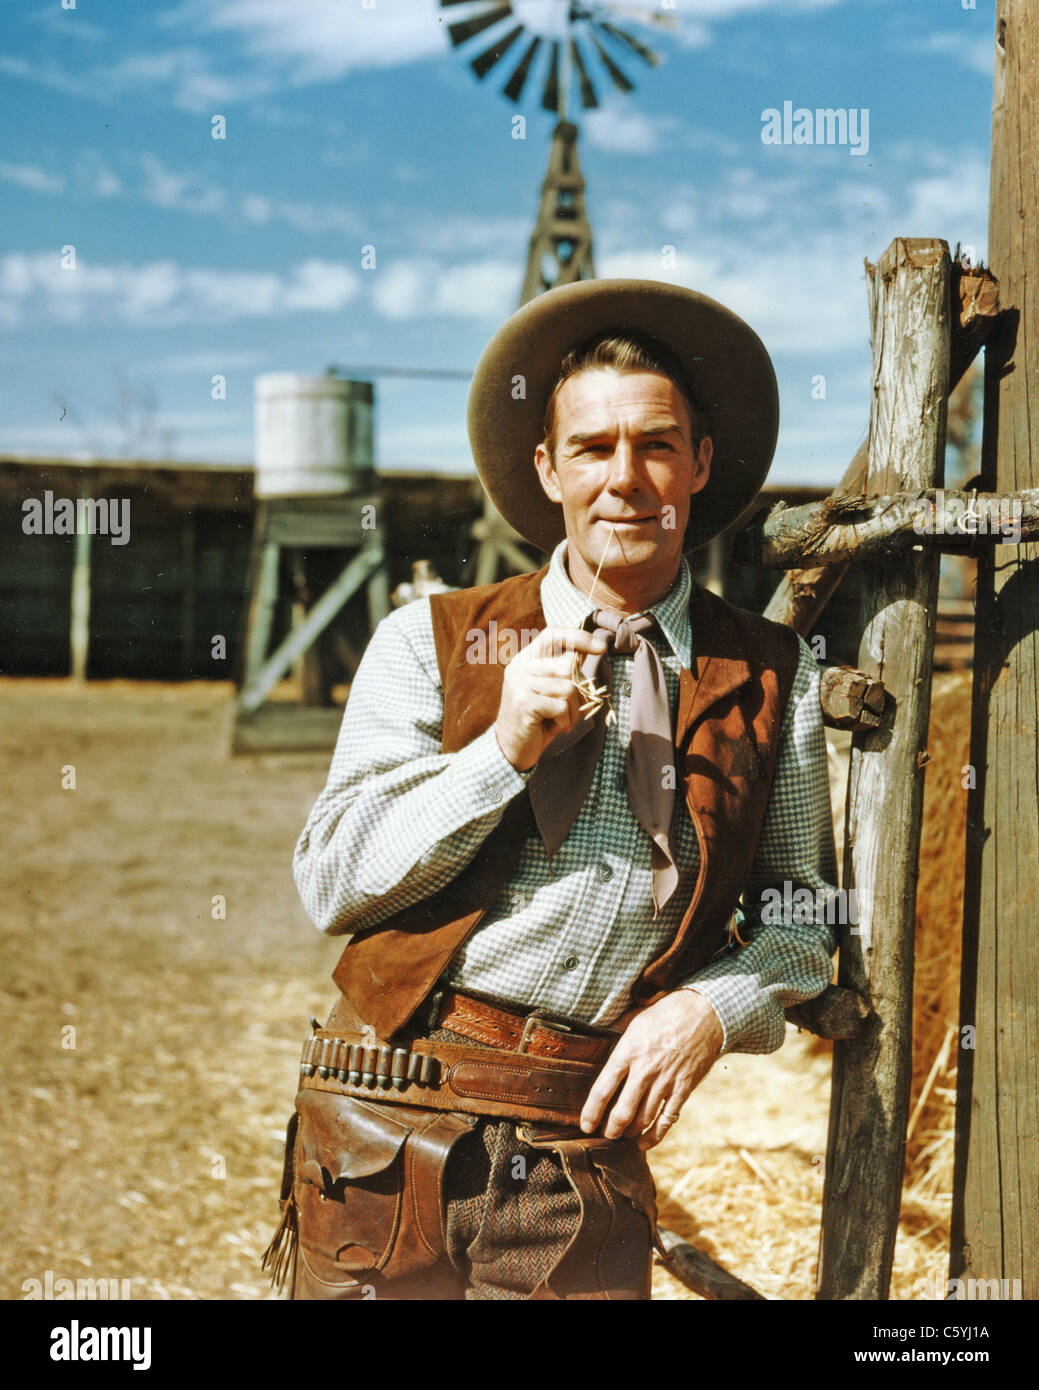 RANDOLPH SCOTT (1898-1987) US film actor in a Western film about 1950 - Stock Image